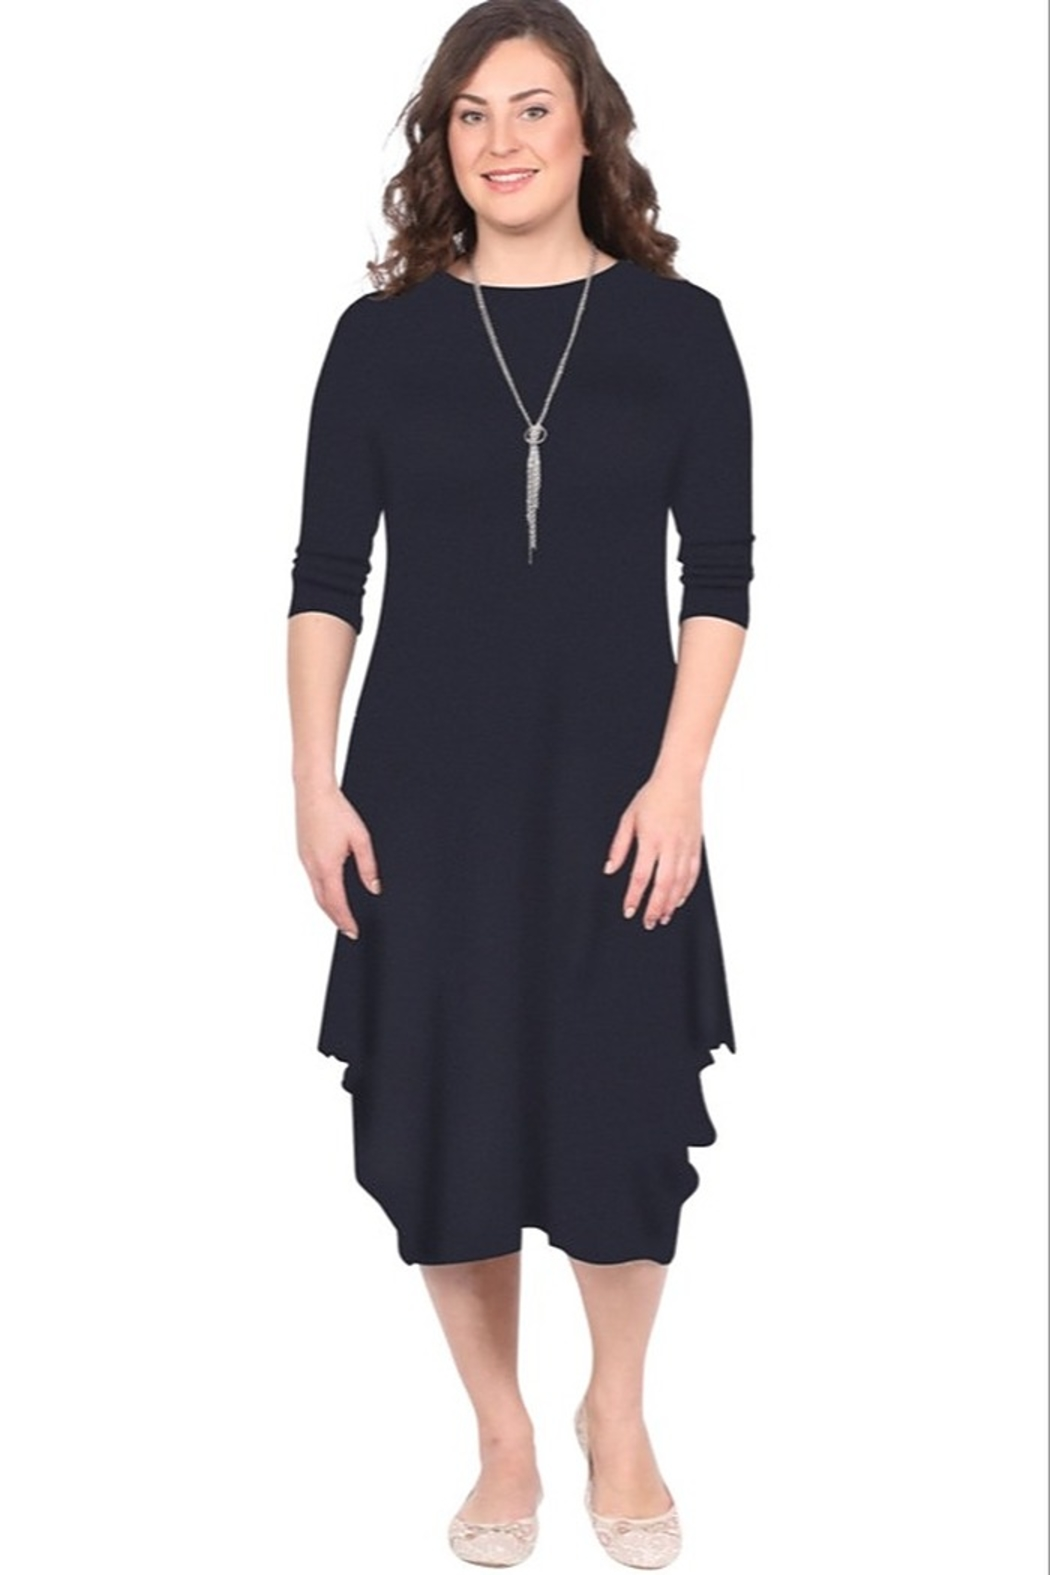 Kosher Casual Boho draping dress #1647 - Front Cropped Image